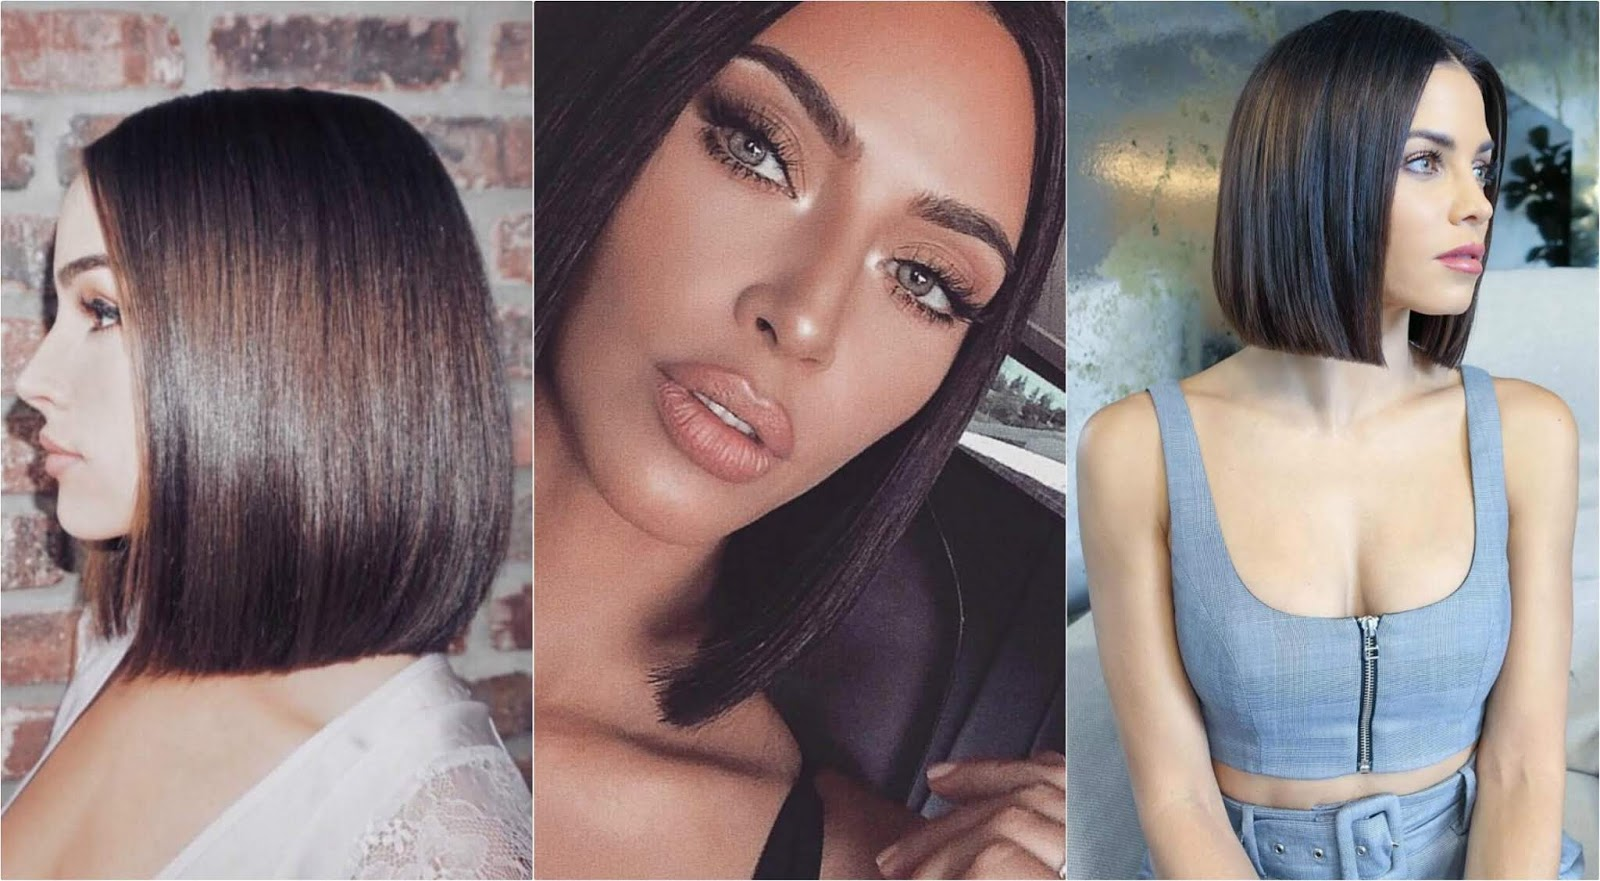 Glass Hair Favorite New Hairstyle Of The Most Famous Hollywood